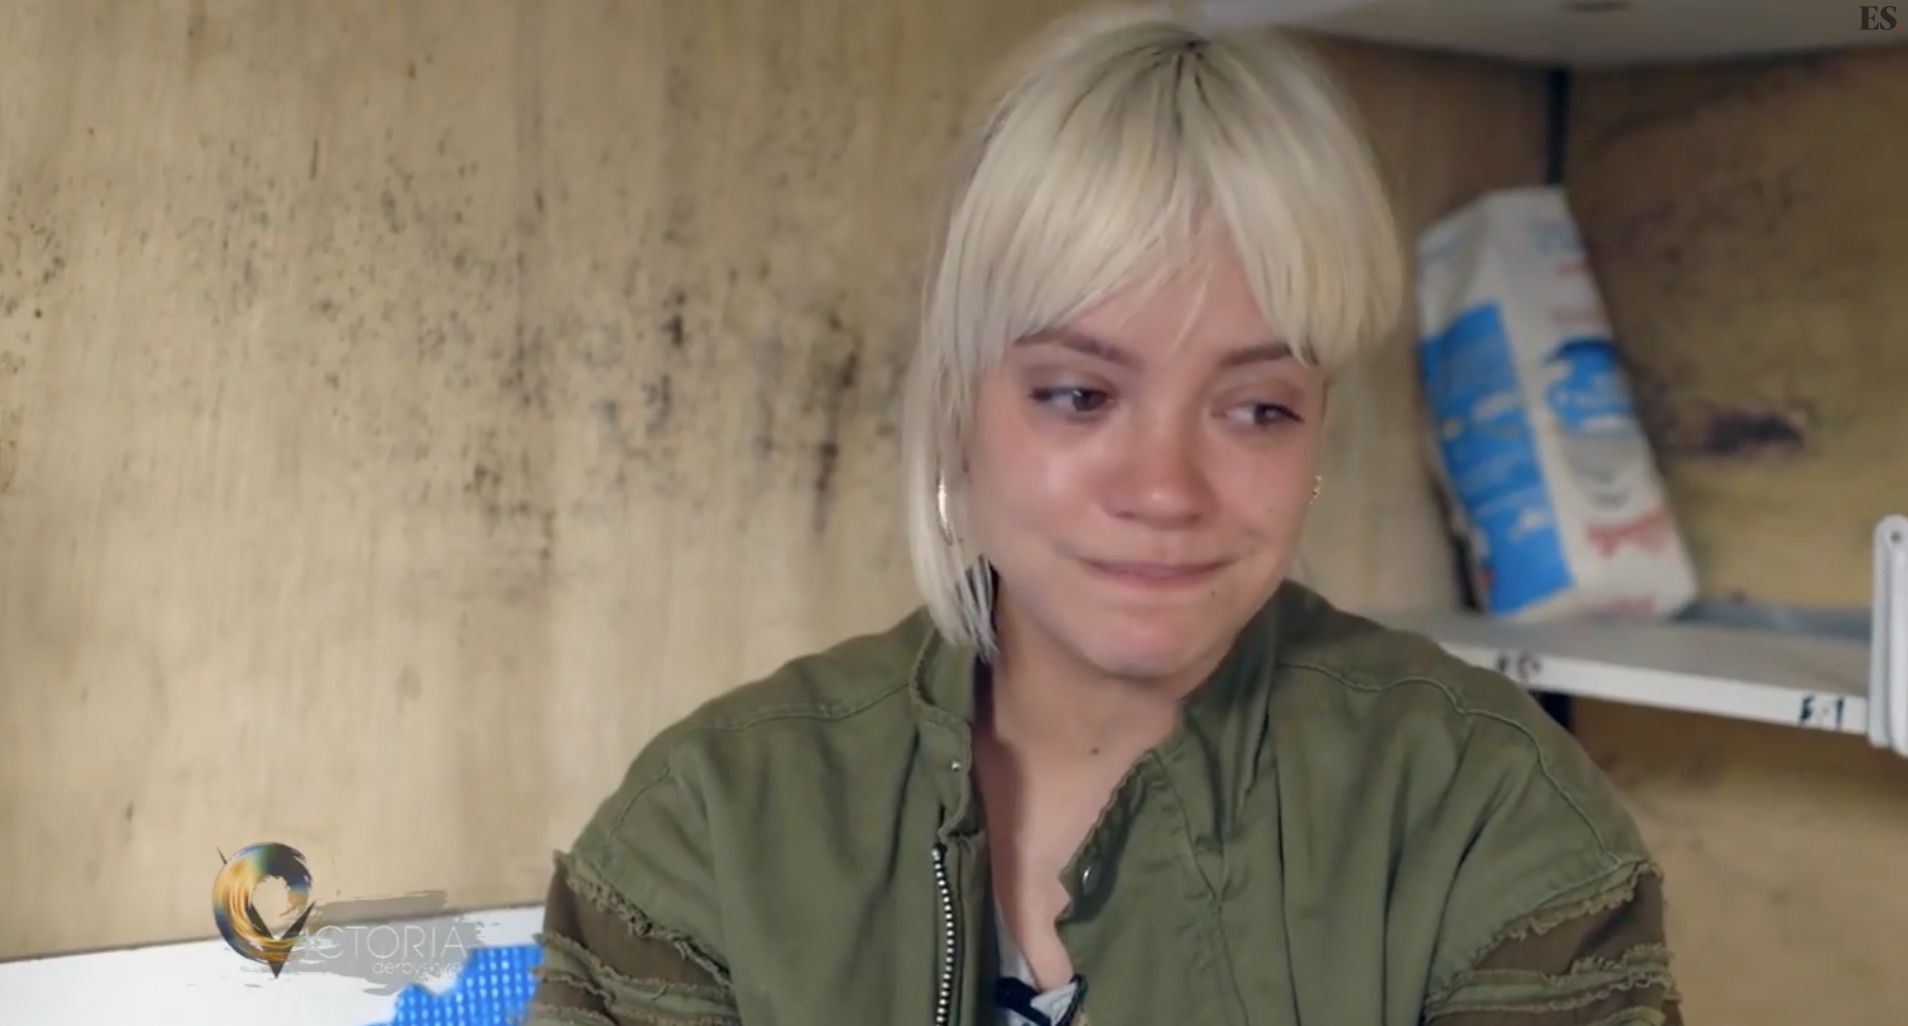 Lily Allen was criticised for her refugee film on 'The Victoria Derbyshire